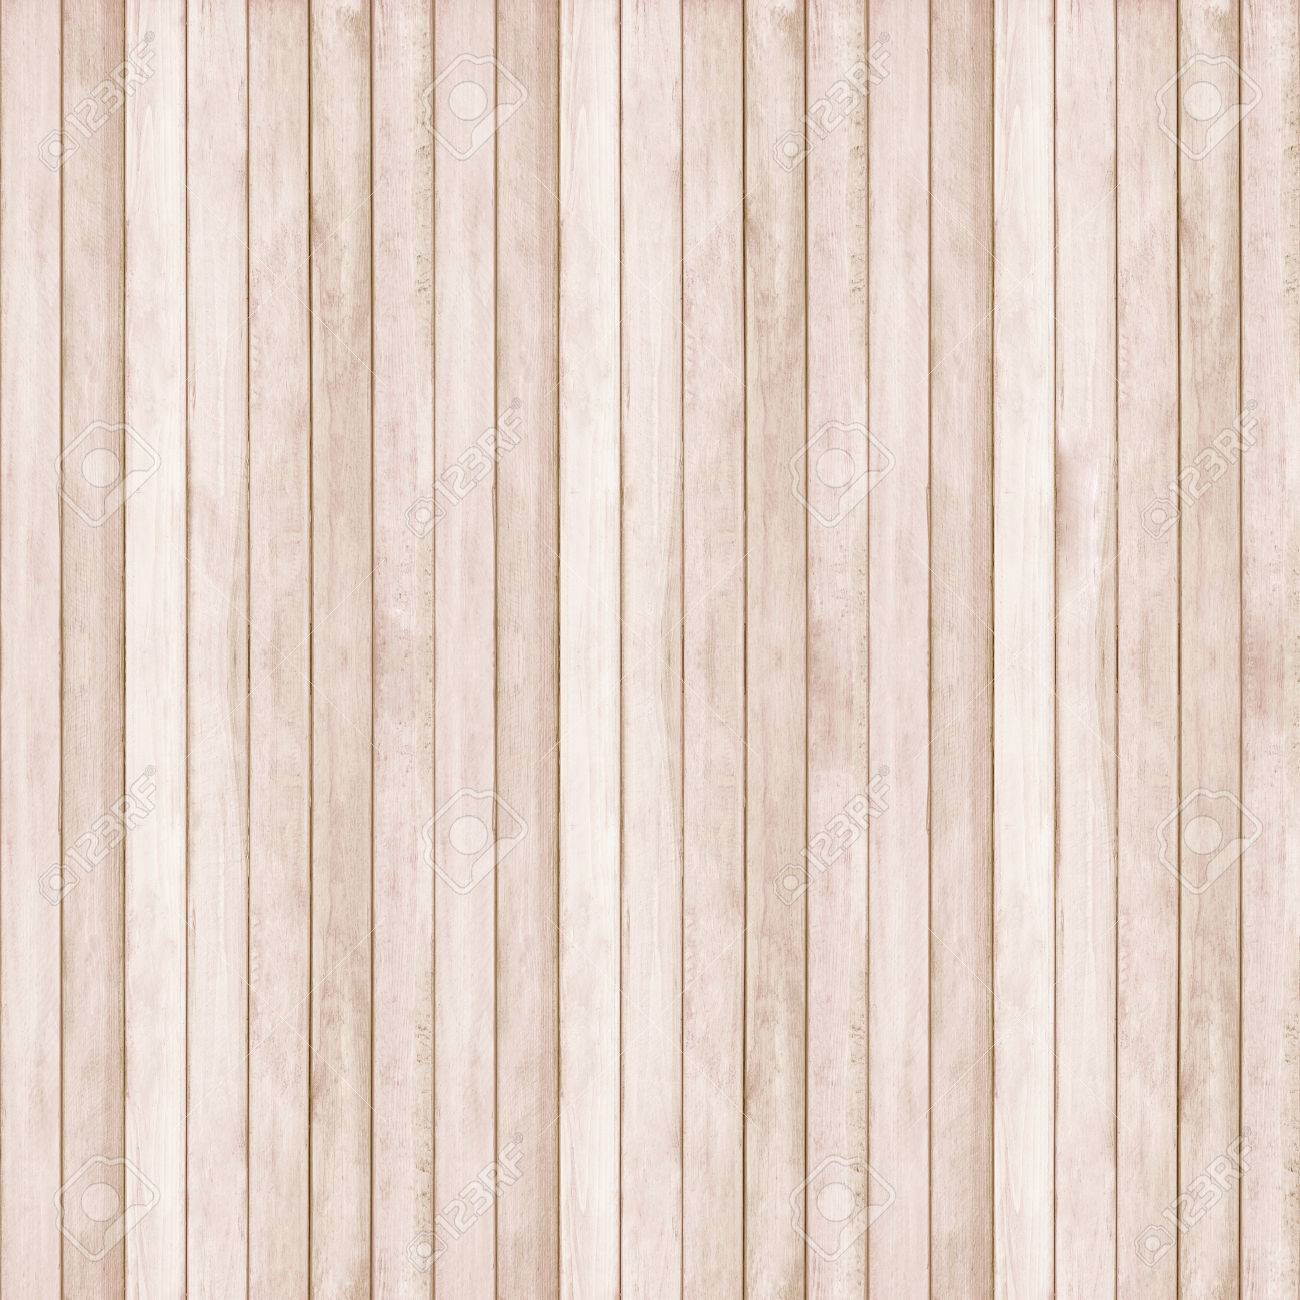 Wooden wall texture background, Toasted almond pantone color - 37094623